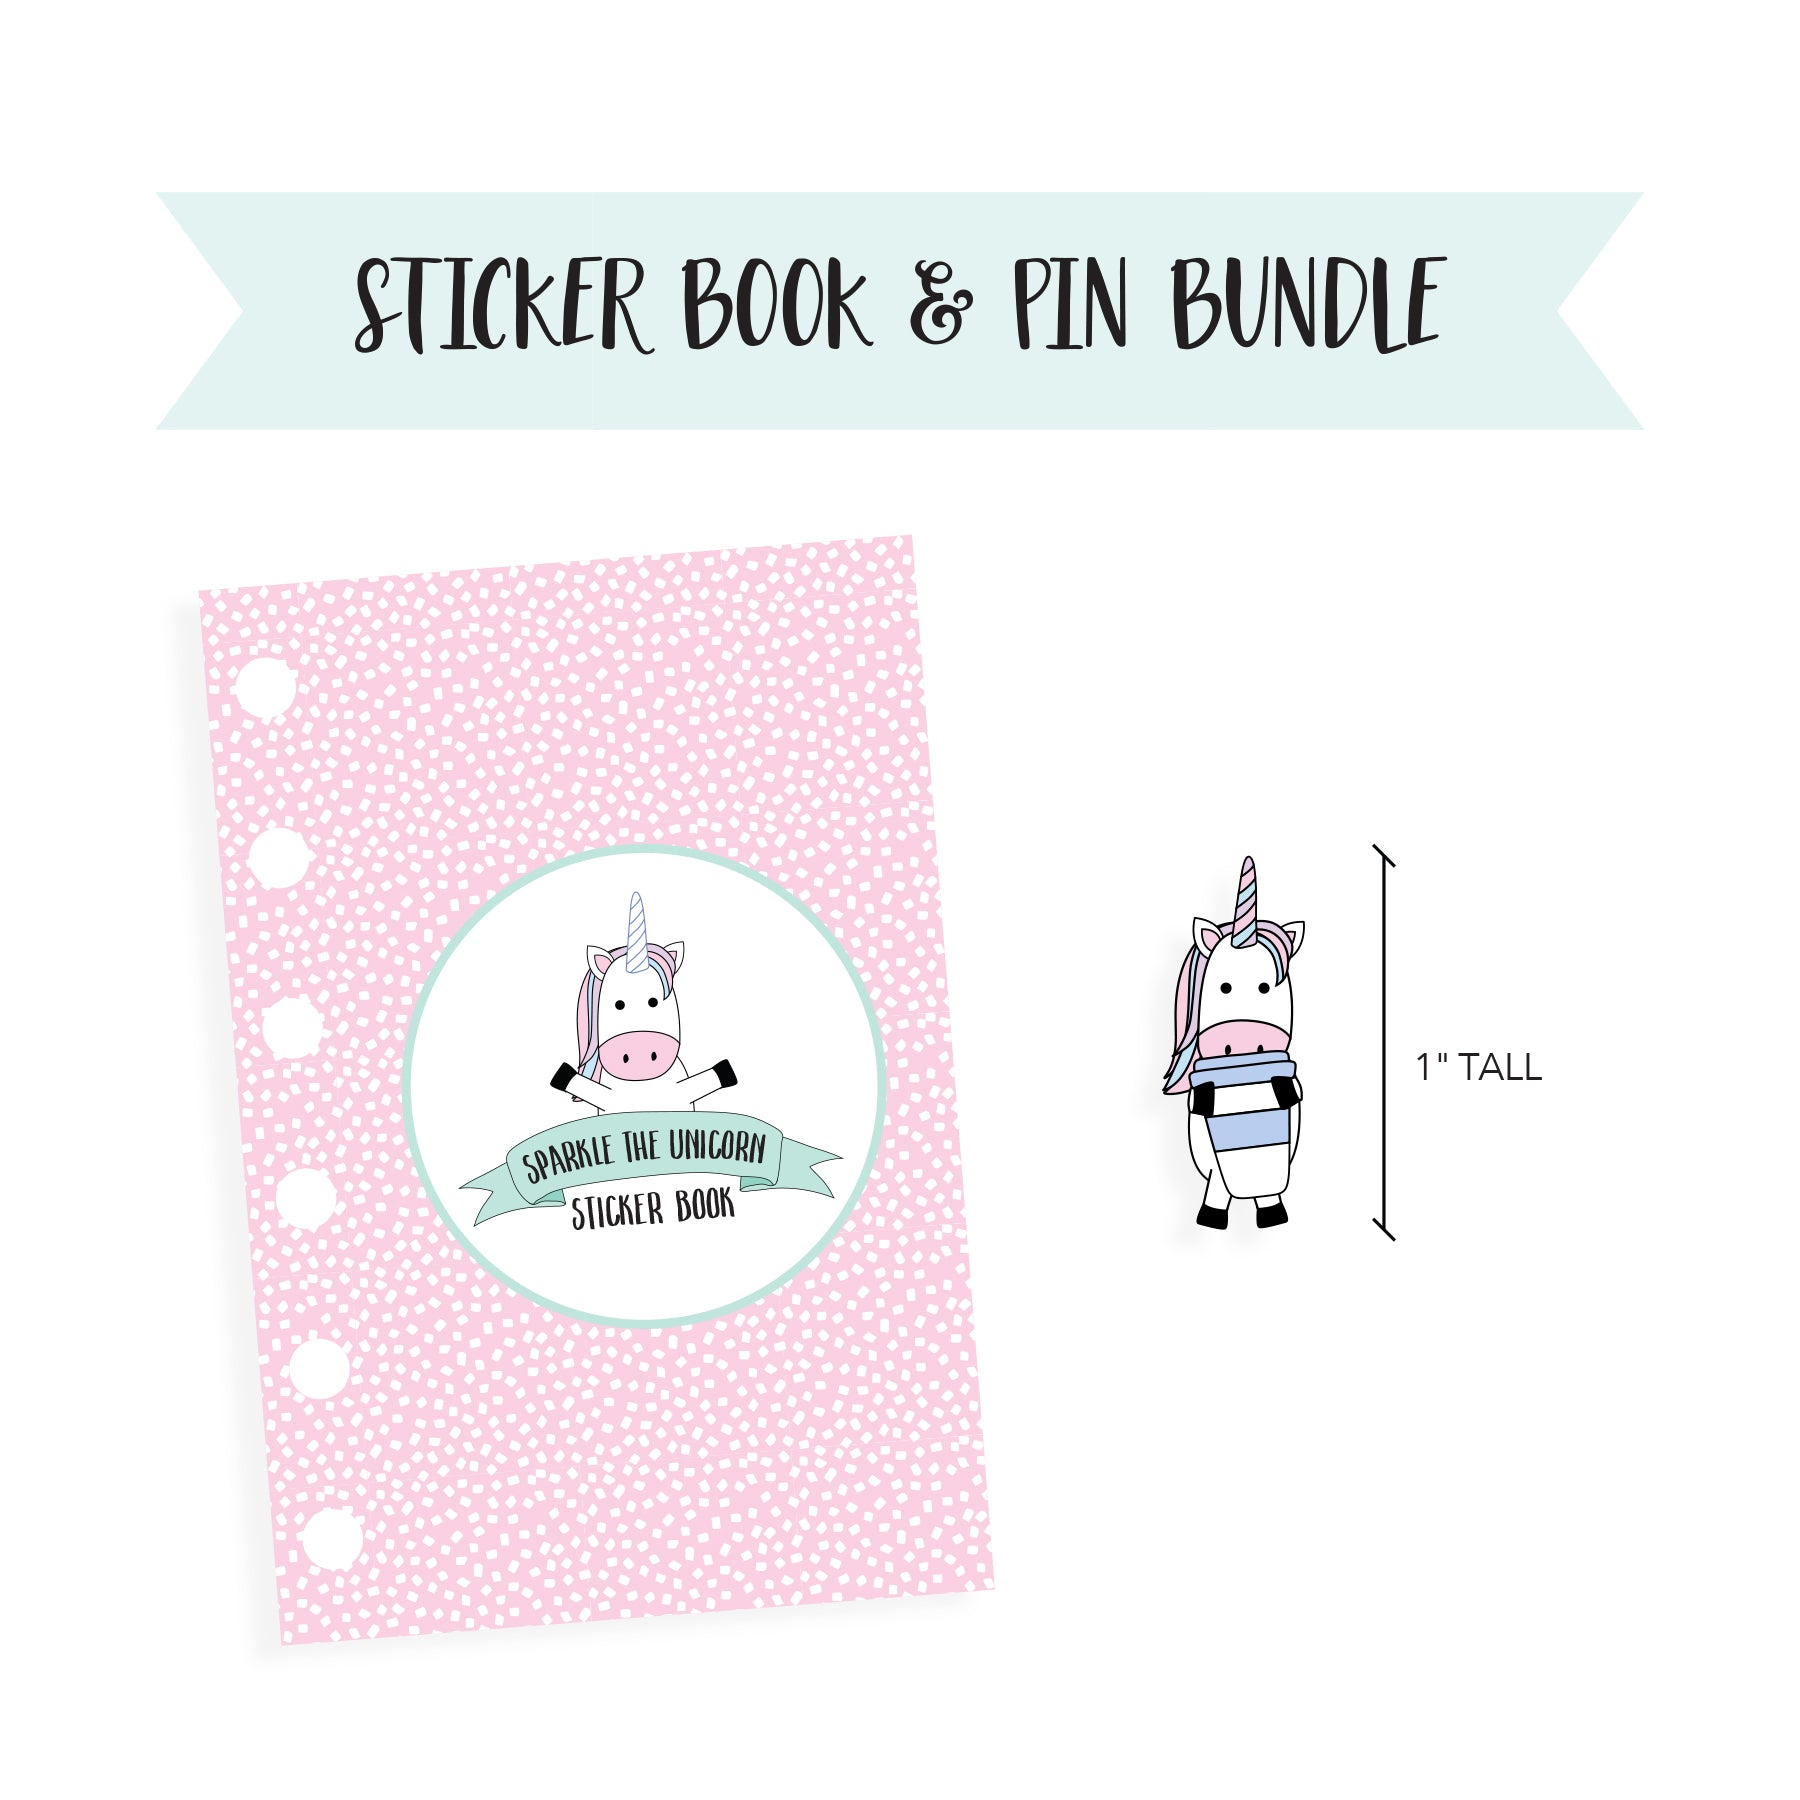 BUNDLE // Sparkle the Unicorn // Sticker Book Inserts / Lapel Pin